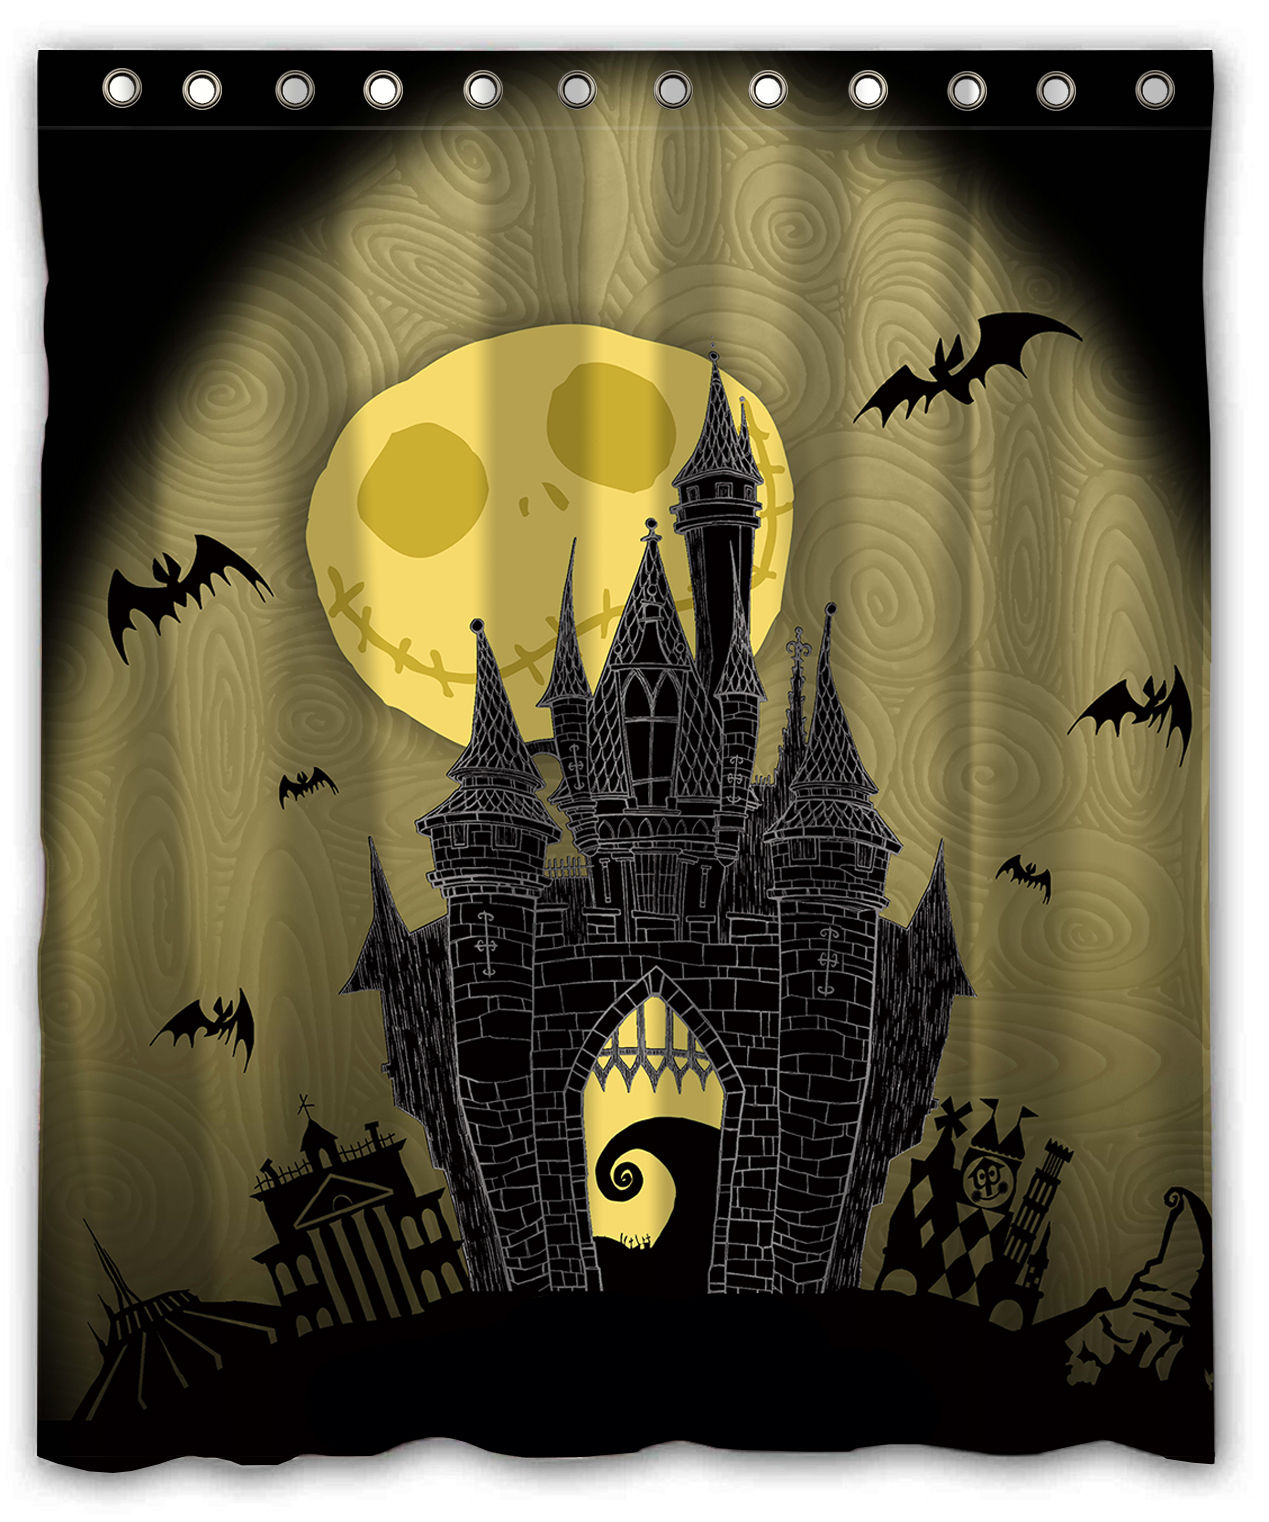 THE NIGHTMARE BEFORE CHRISTMAS Custom Waterproof Shower Curtain 60 X 72 Free Shipping Bathroom Decor In Curtains From Home Garden On